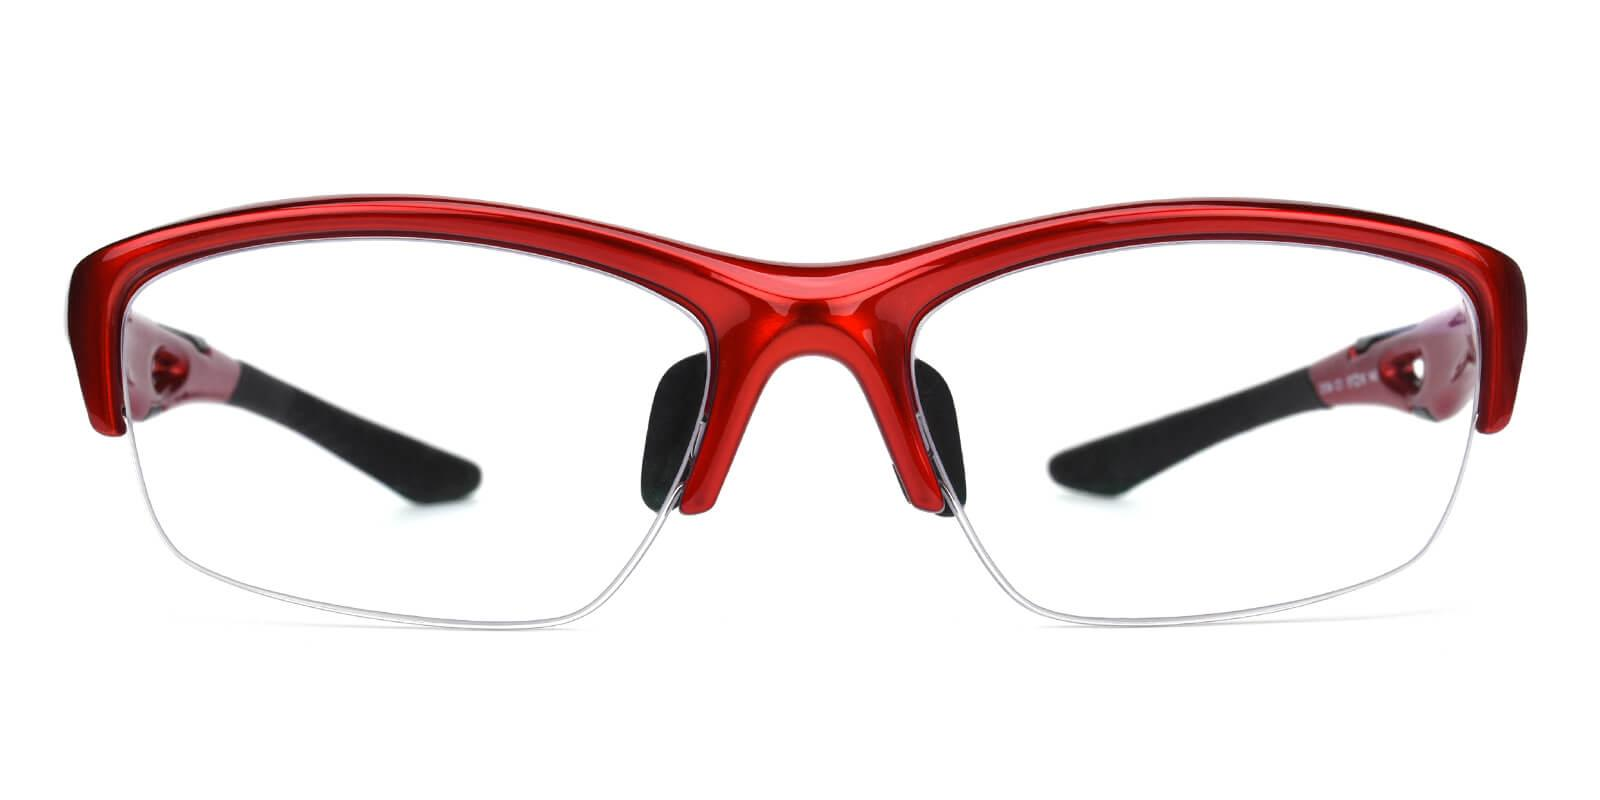 Philips-Red-Rectangle-TR-SportsGlasses-detail